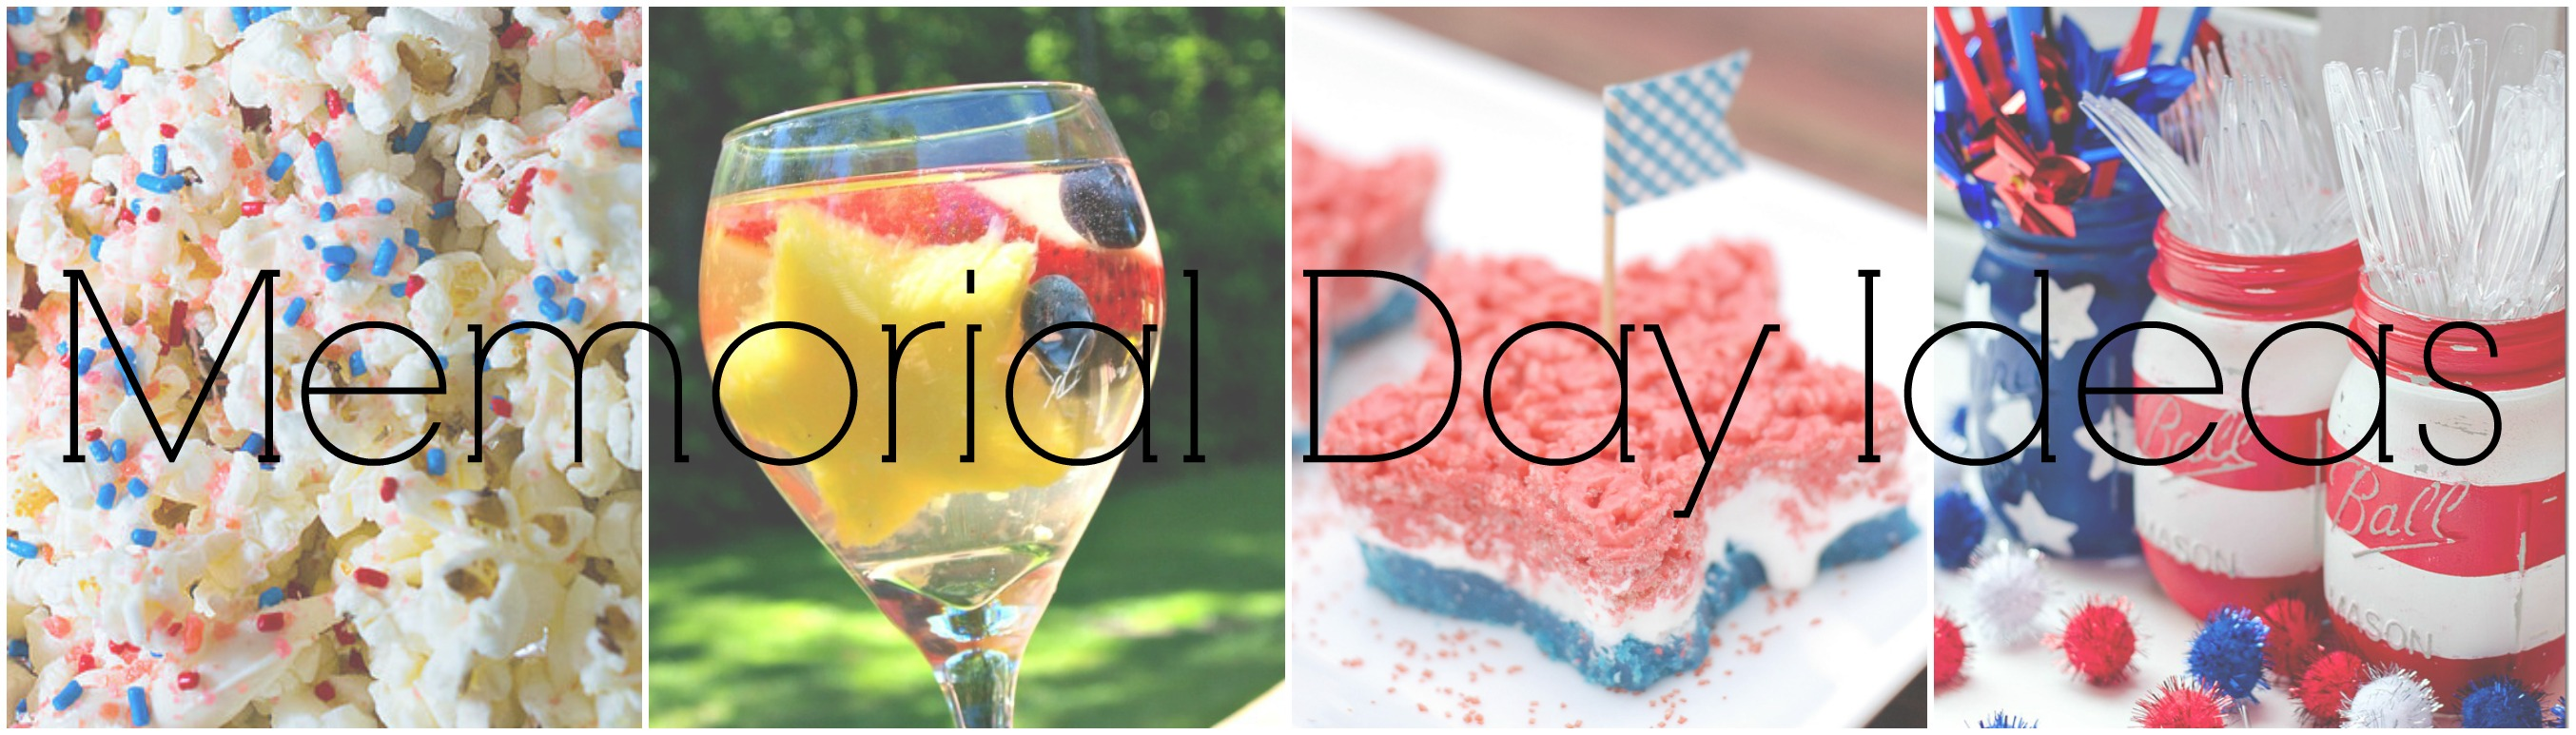 Memorial Day BBQ Recipes, Decorations, and More! - Commellini Estate